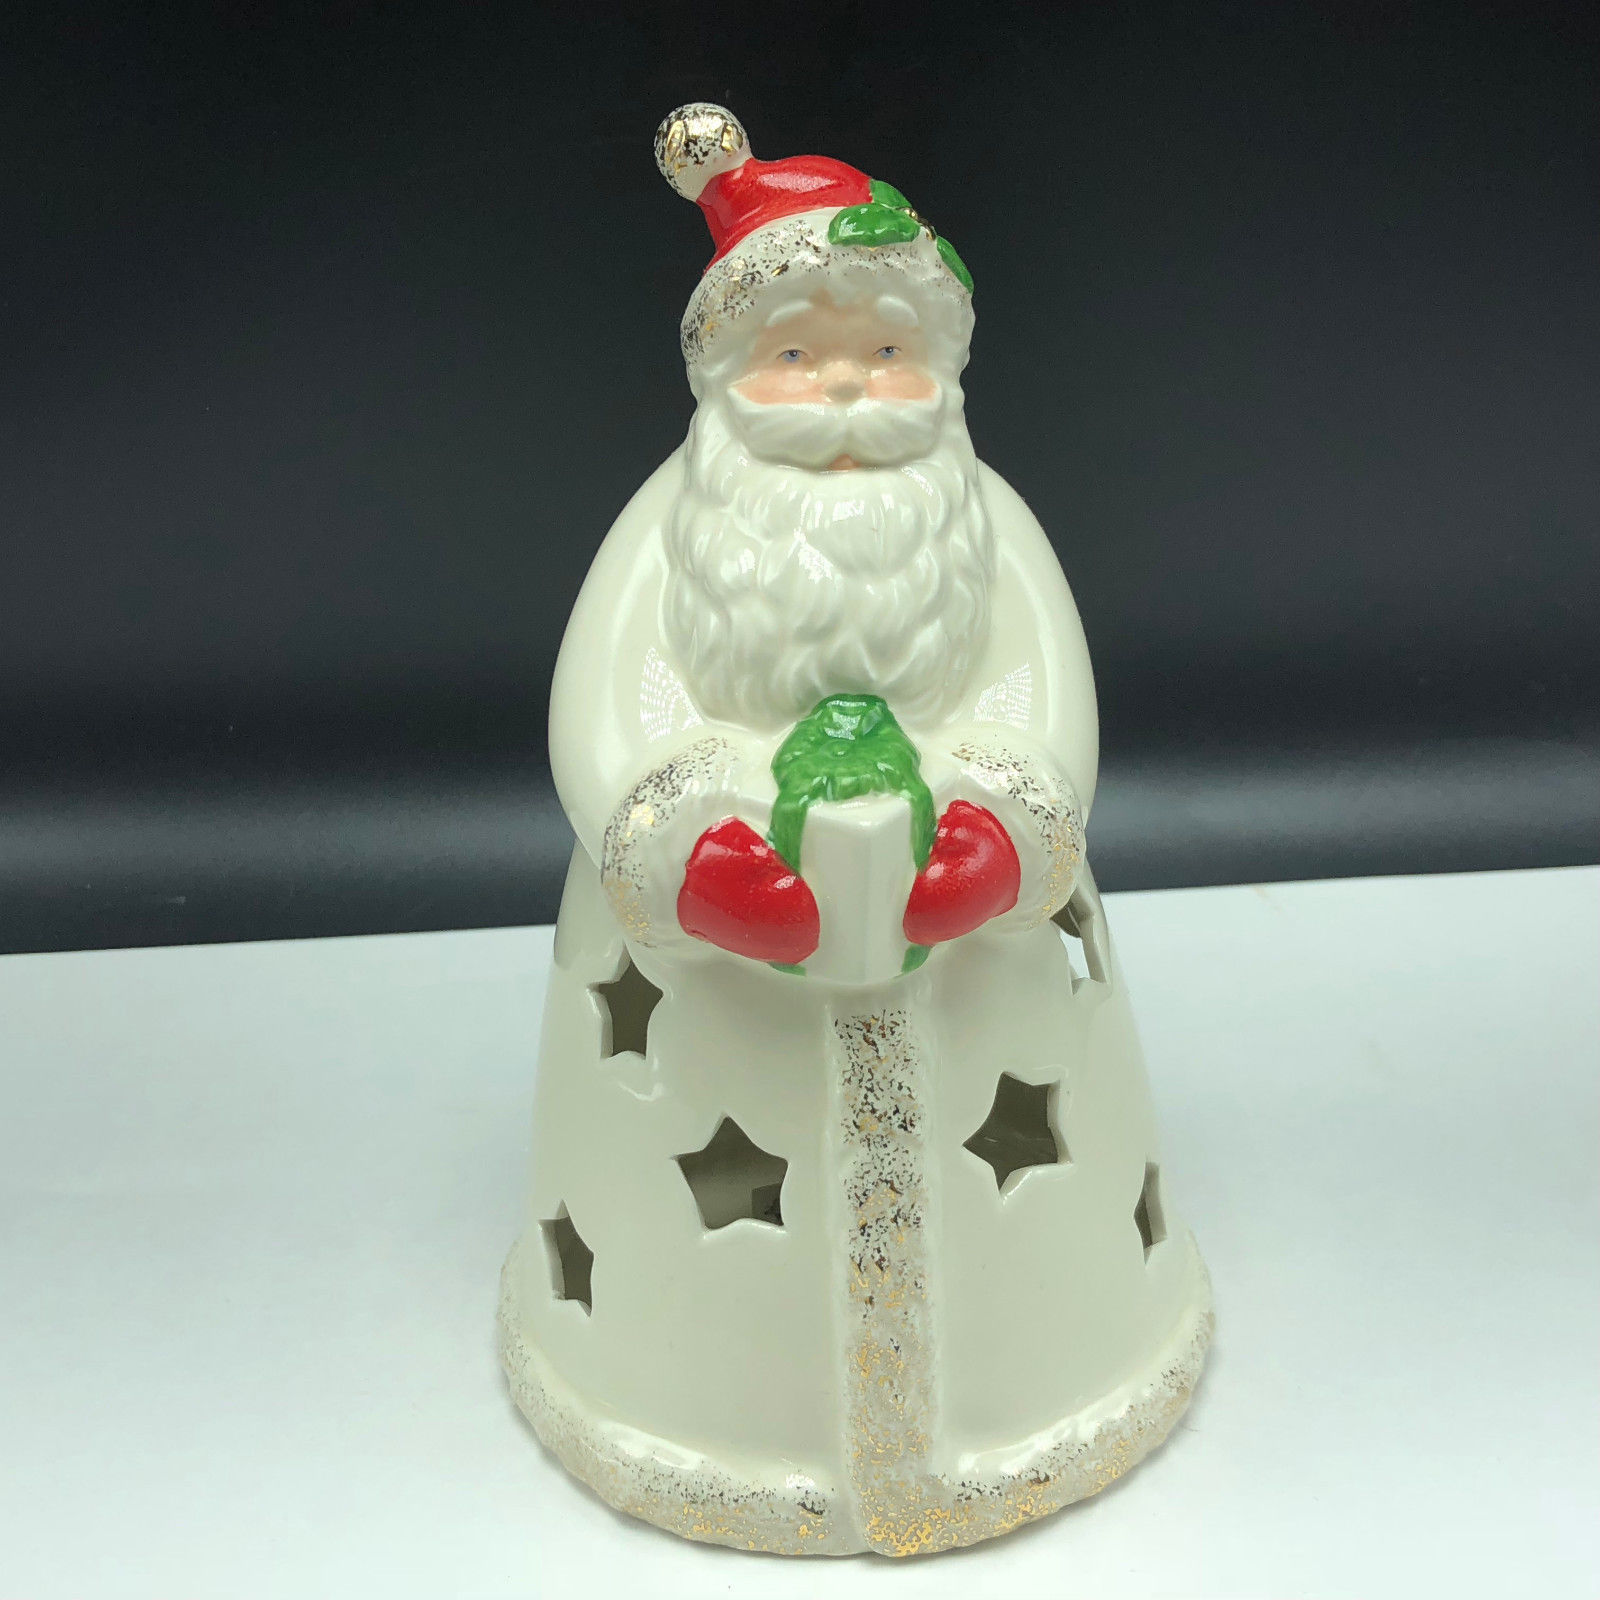 LENOX COLOR CHANGING SANTA CLAUS FIGURINE seasons sparkle nib box Christmas gift